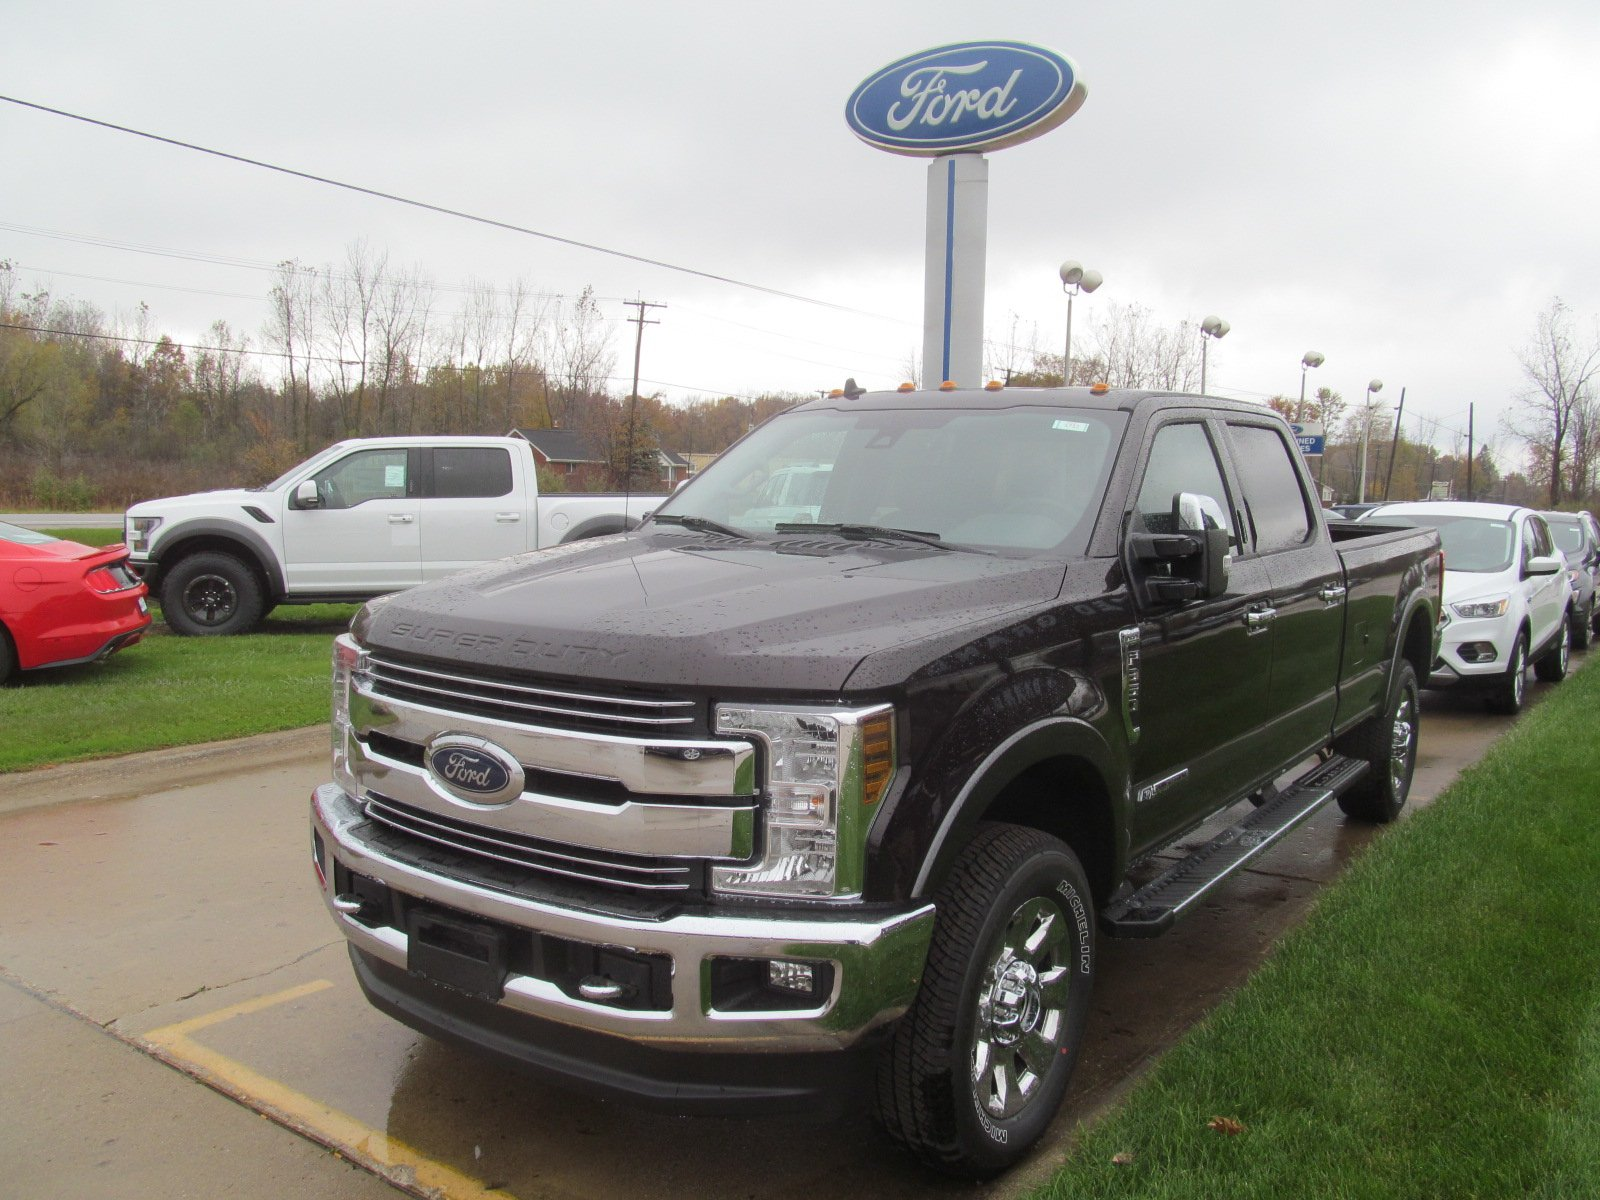 2019 Ford Super Duty F-350 4-Door  FX4 LARIAT w Heated/Cooled Front Seats & Nav. LARIAT 4WD Crew Cab 8 Box